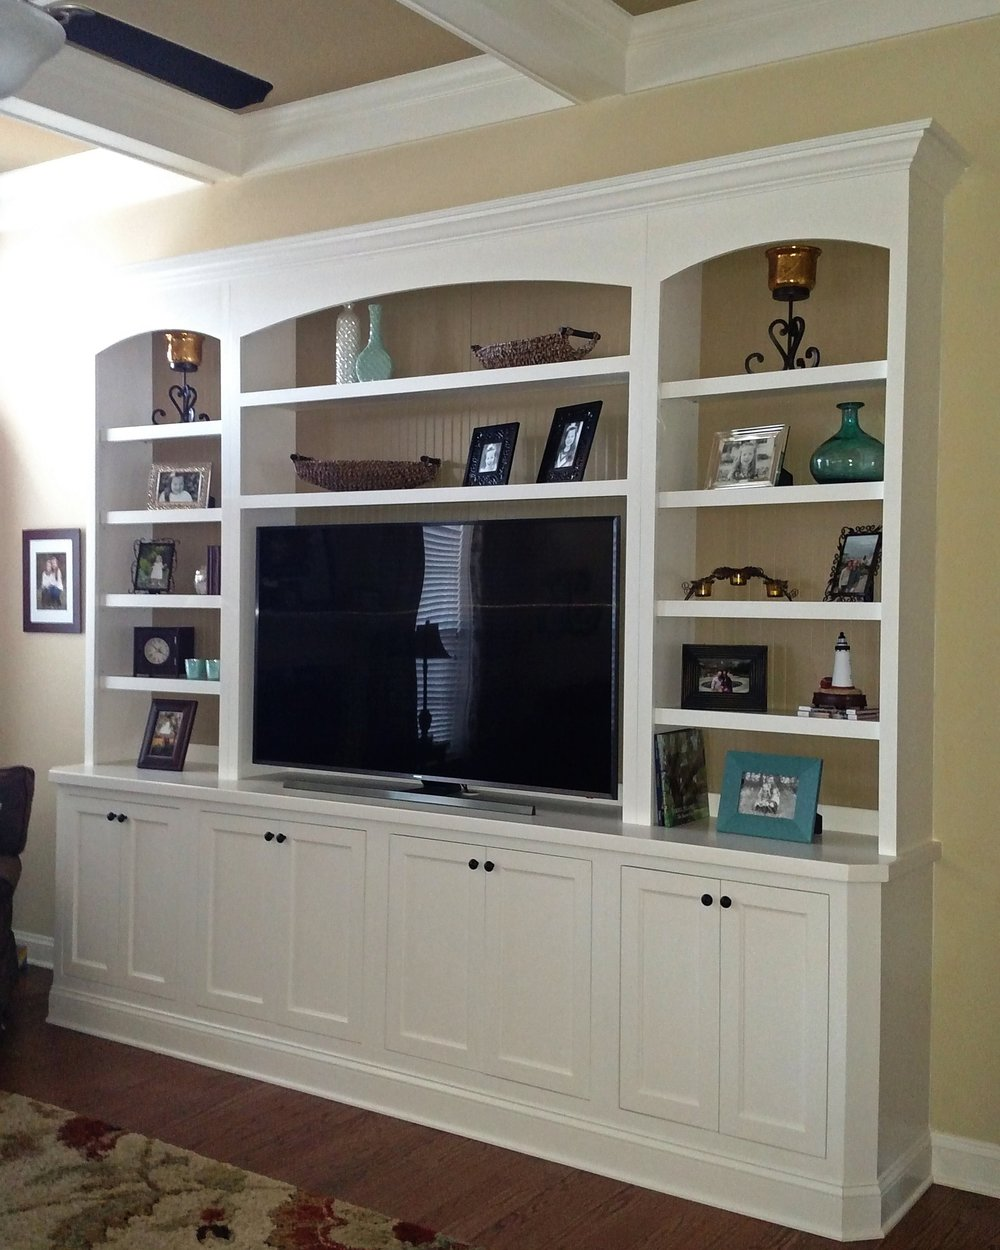 room hack formal livingroom ikea in built after a build living kailo cabinets life ins chic besta it